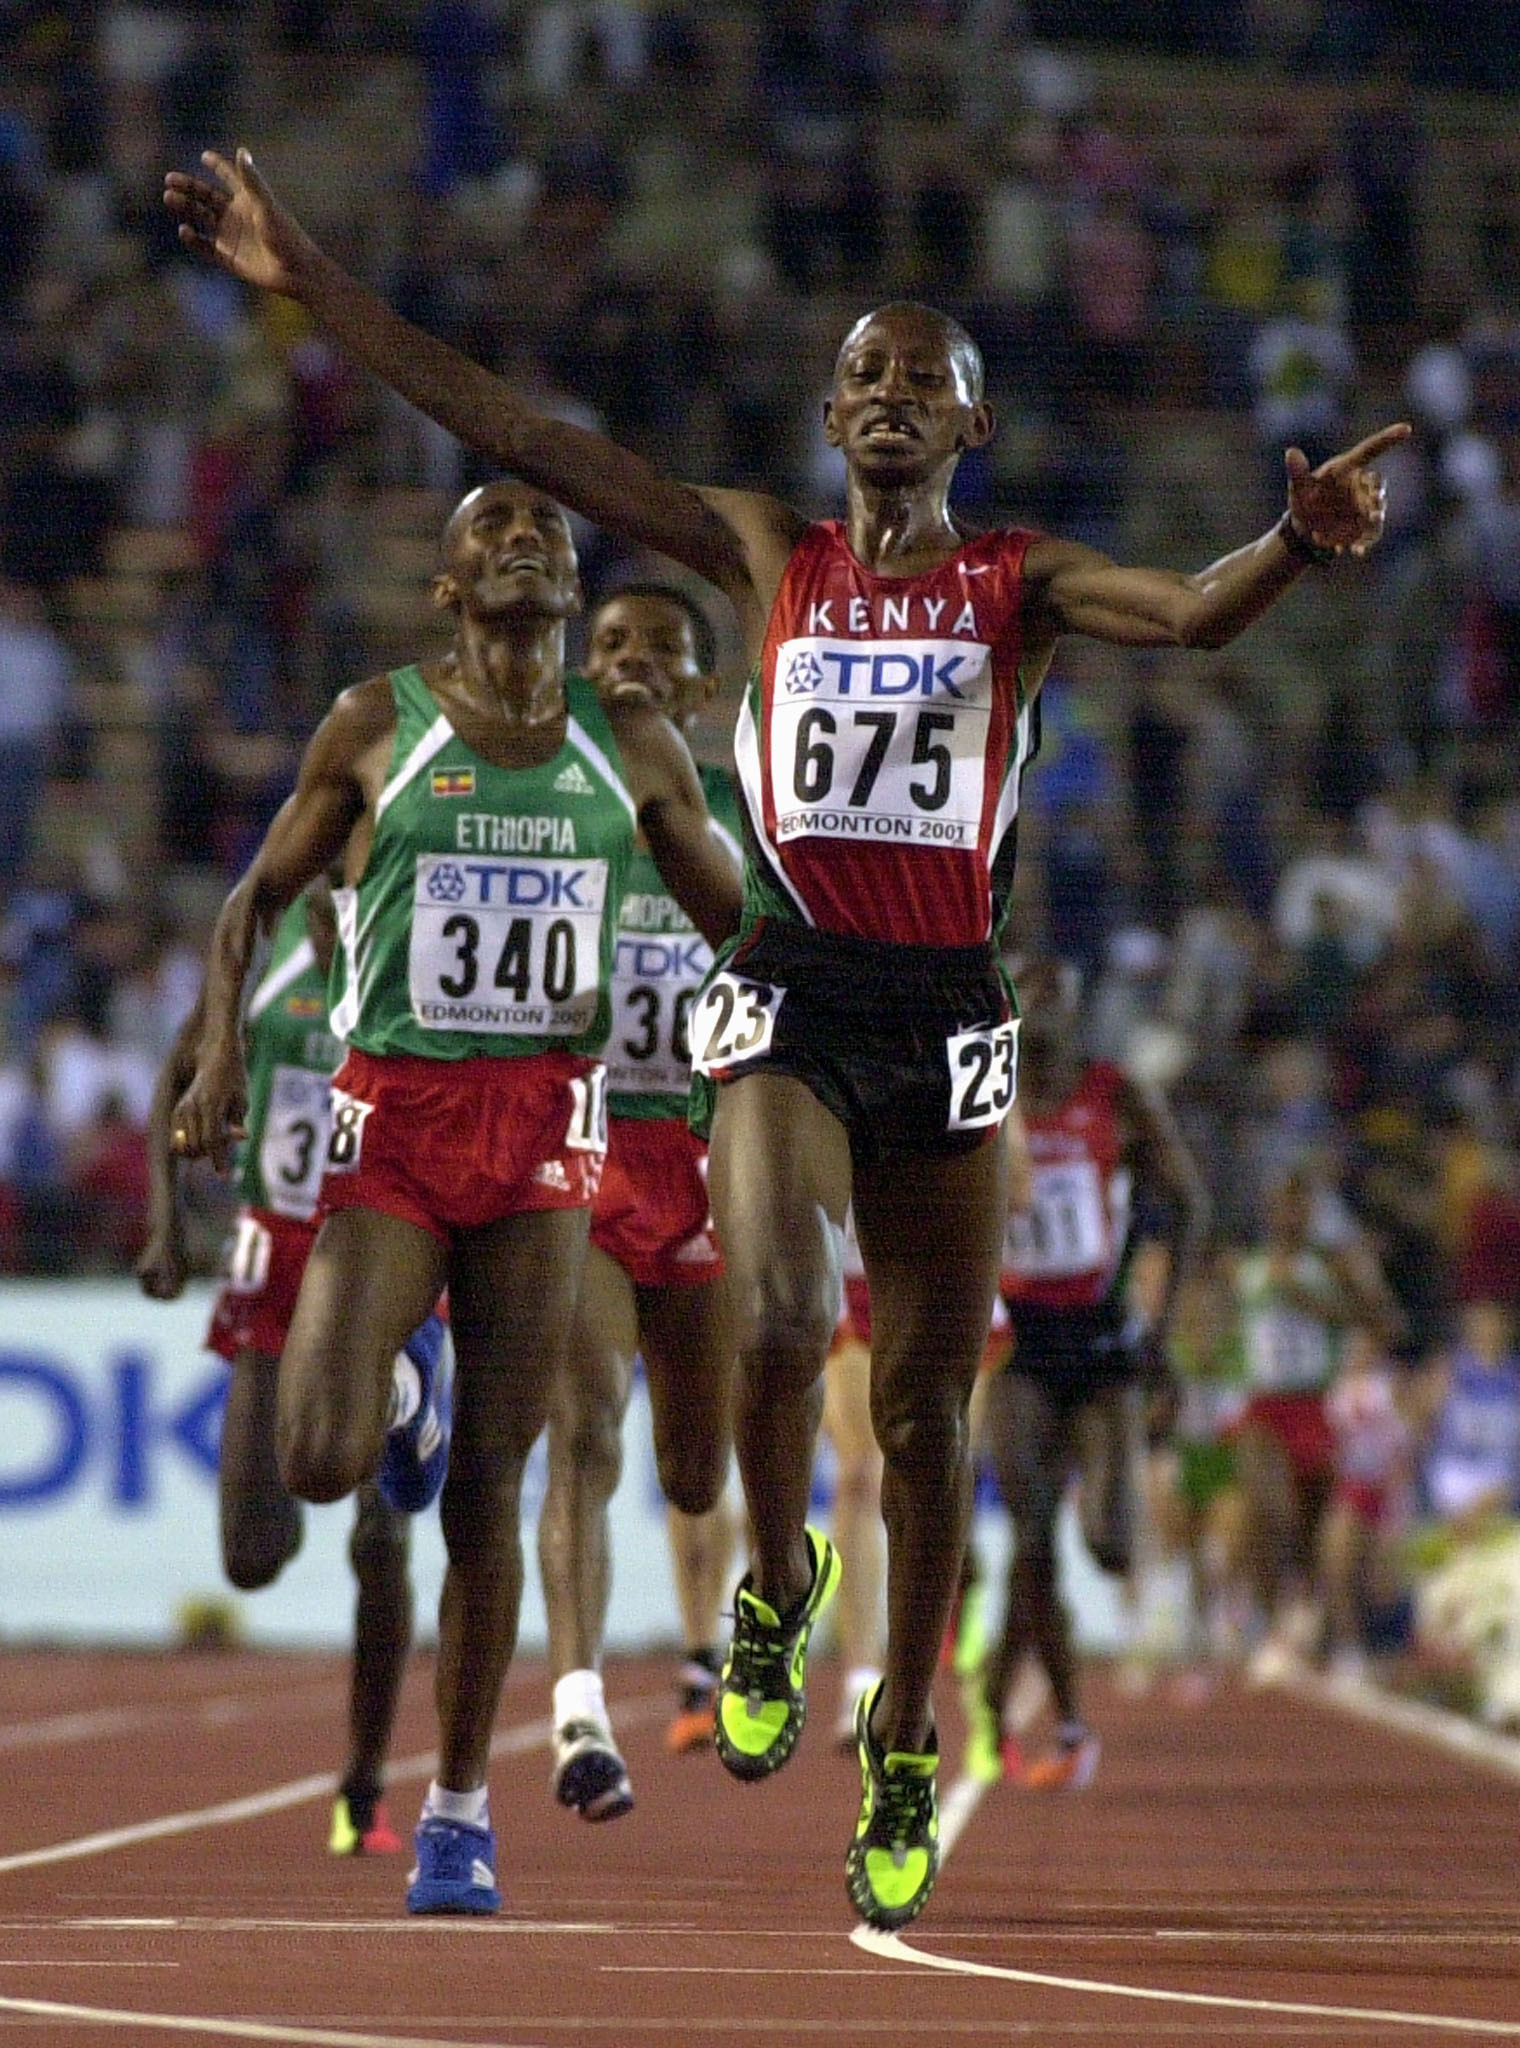 Charles Kamathi secured Kenya their last World Championships 10,000m gold medal, in 2001 ©Getty Images